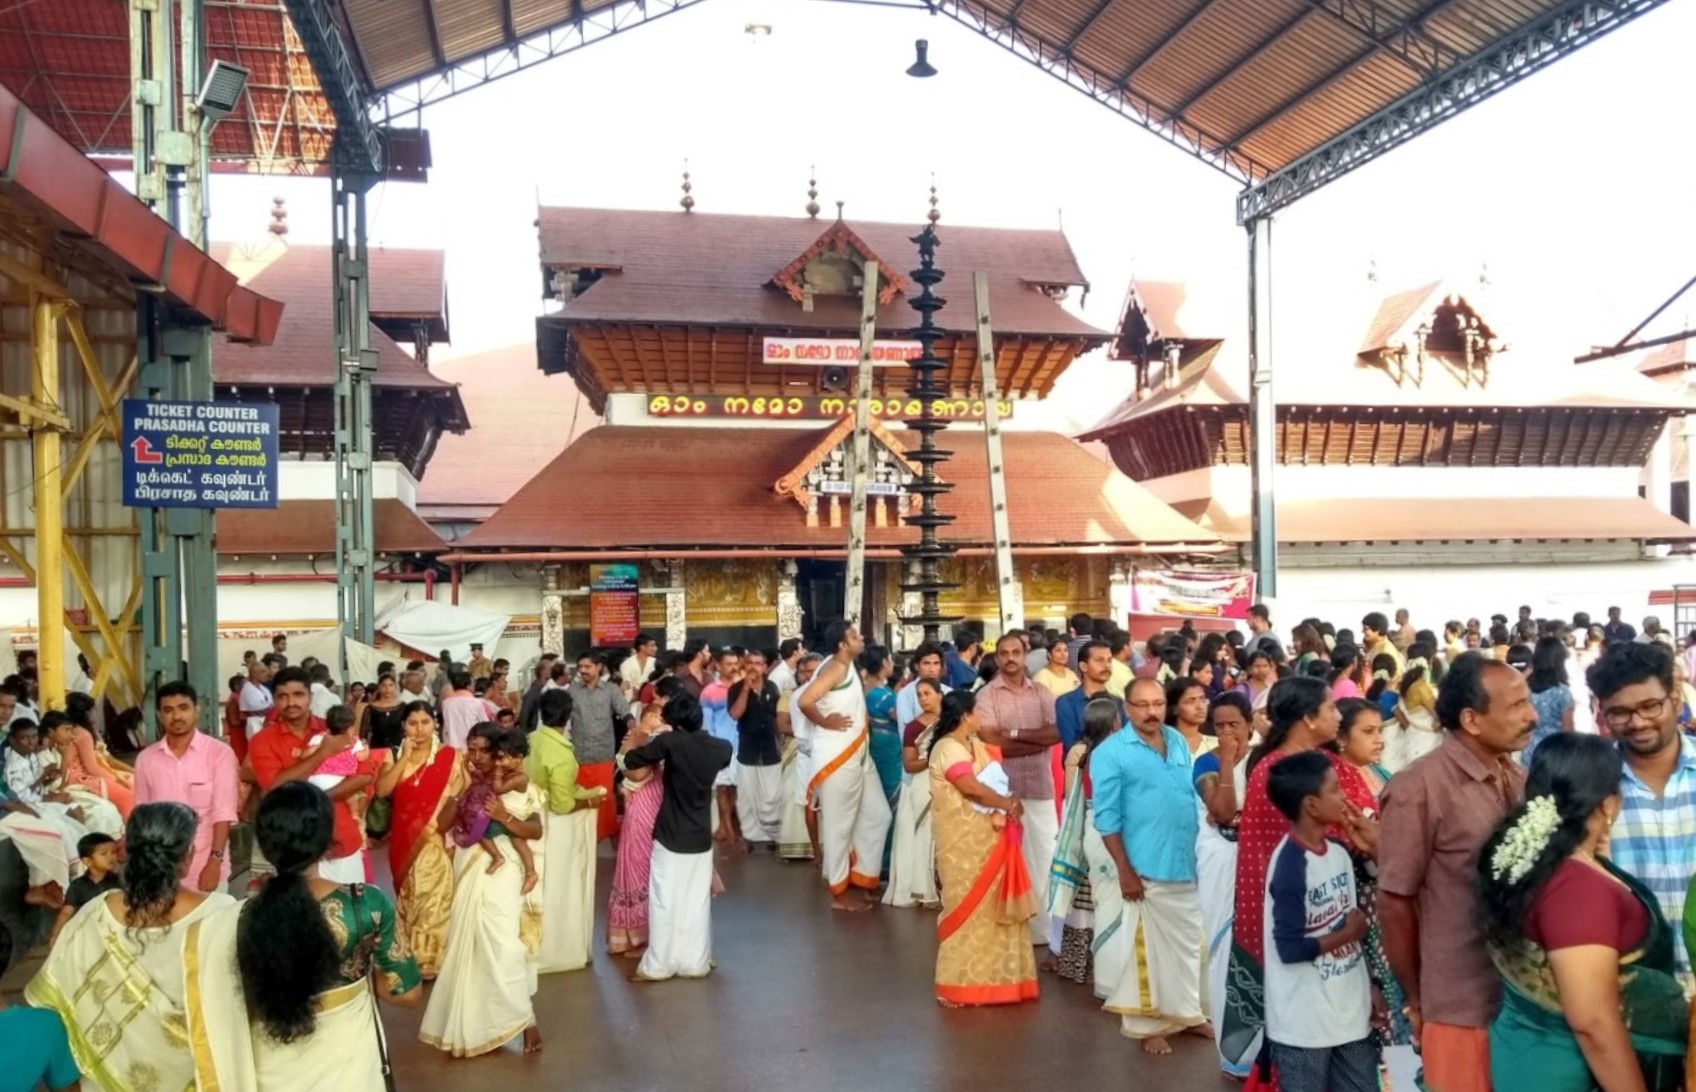 Open to keeping temples closed – Kerala temple board